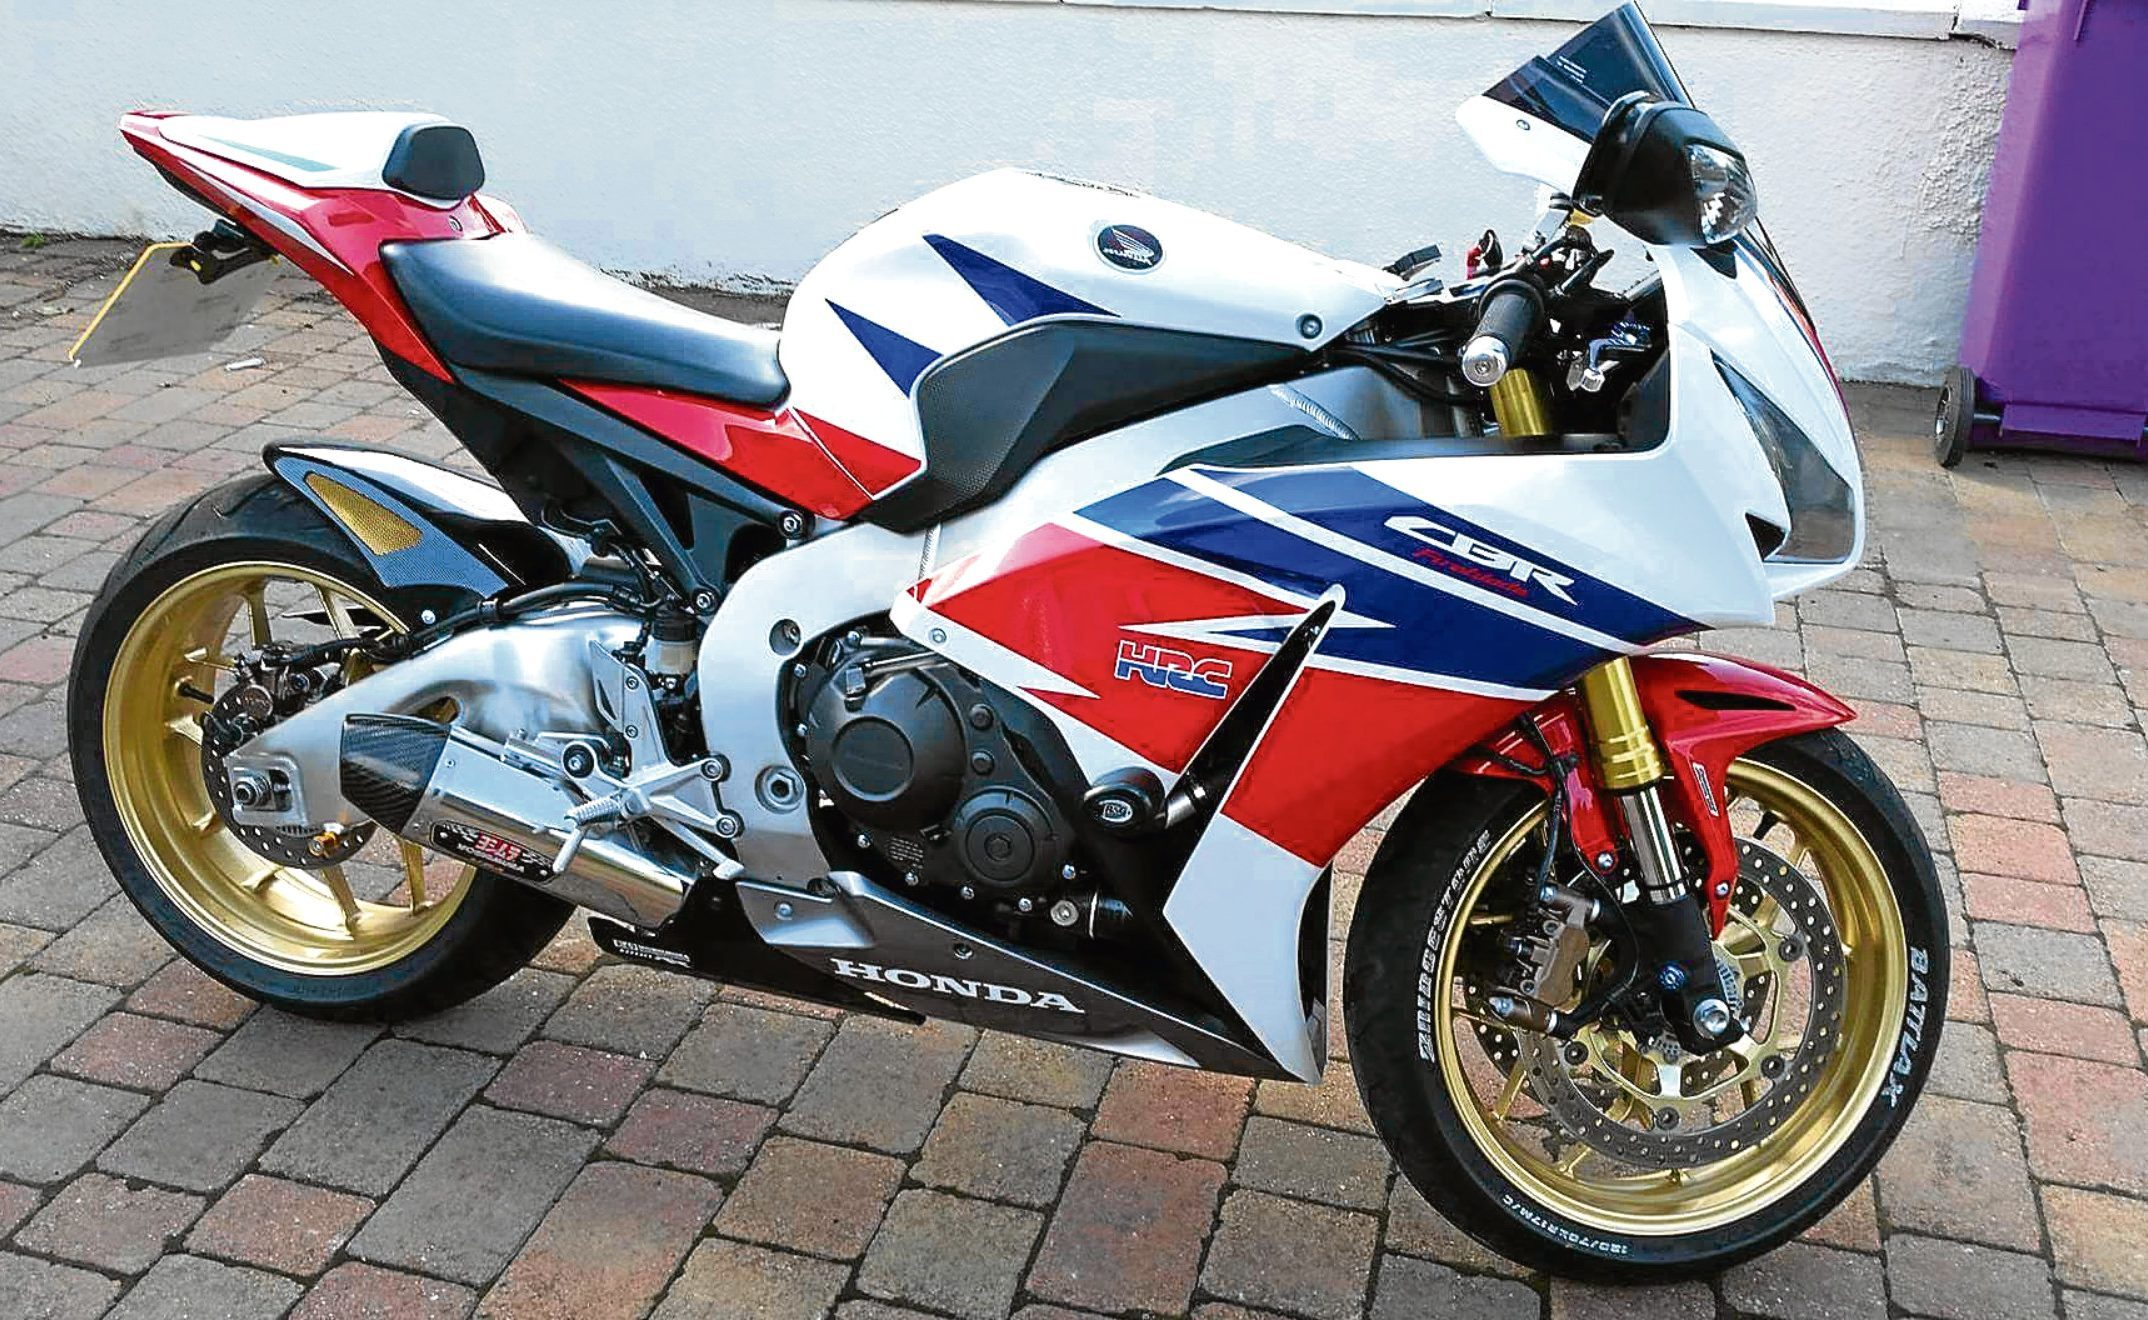 A gold-wheeled Honda Fireblade was one of two motorbikes stolen during the break-in